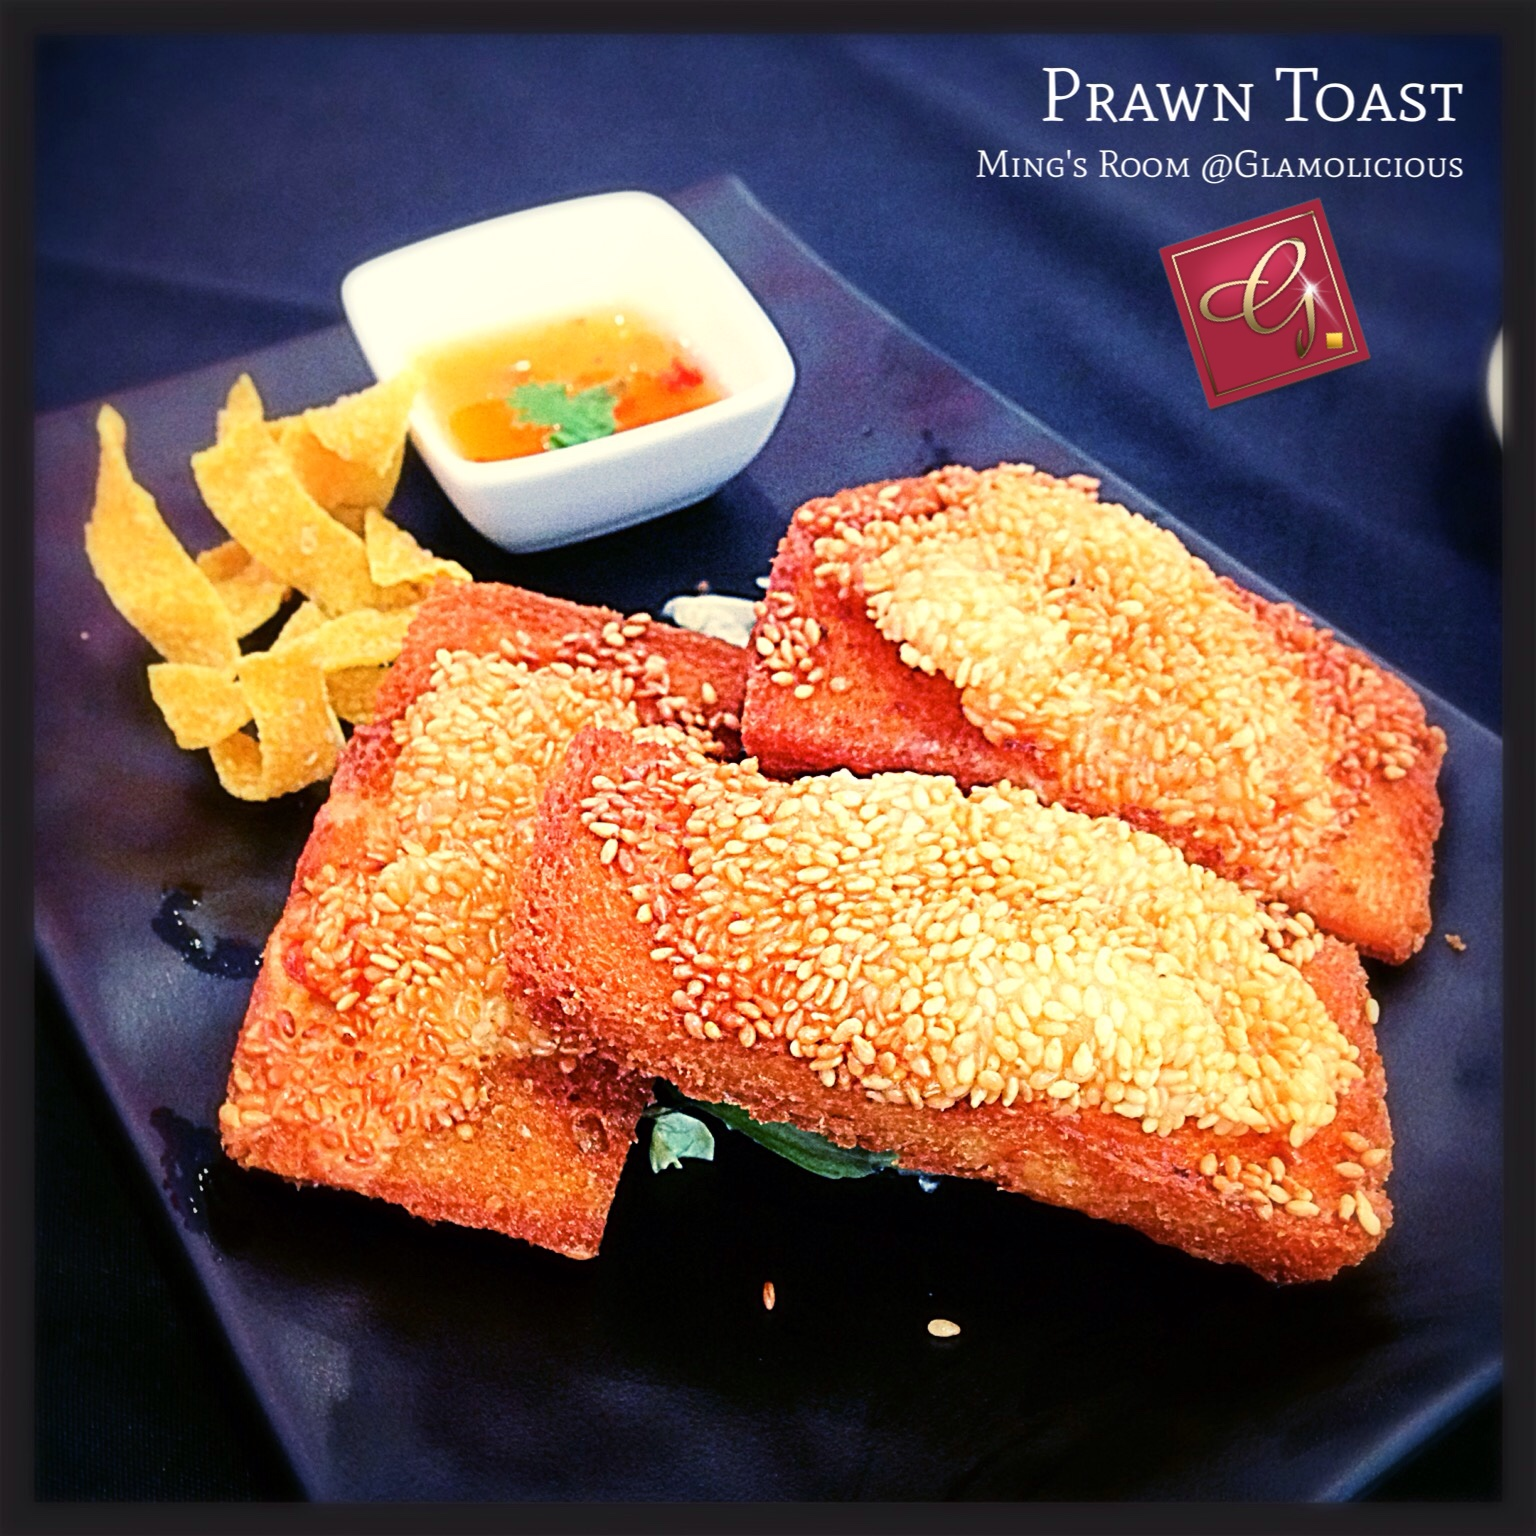 Golden Prawn Toast by Ming Room